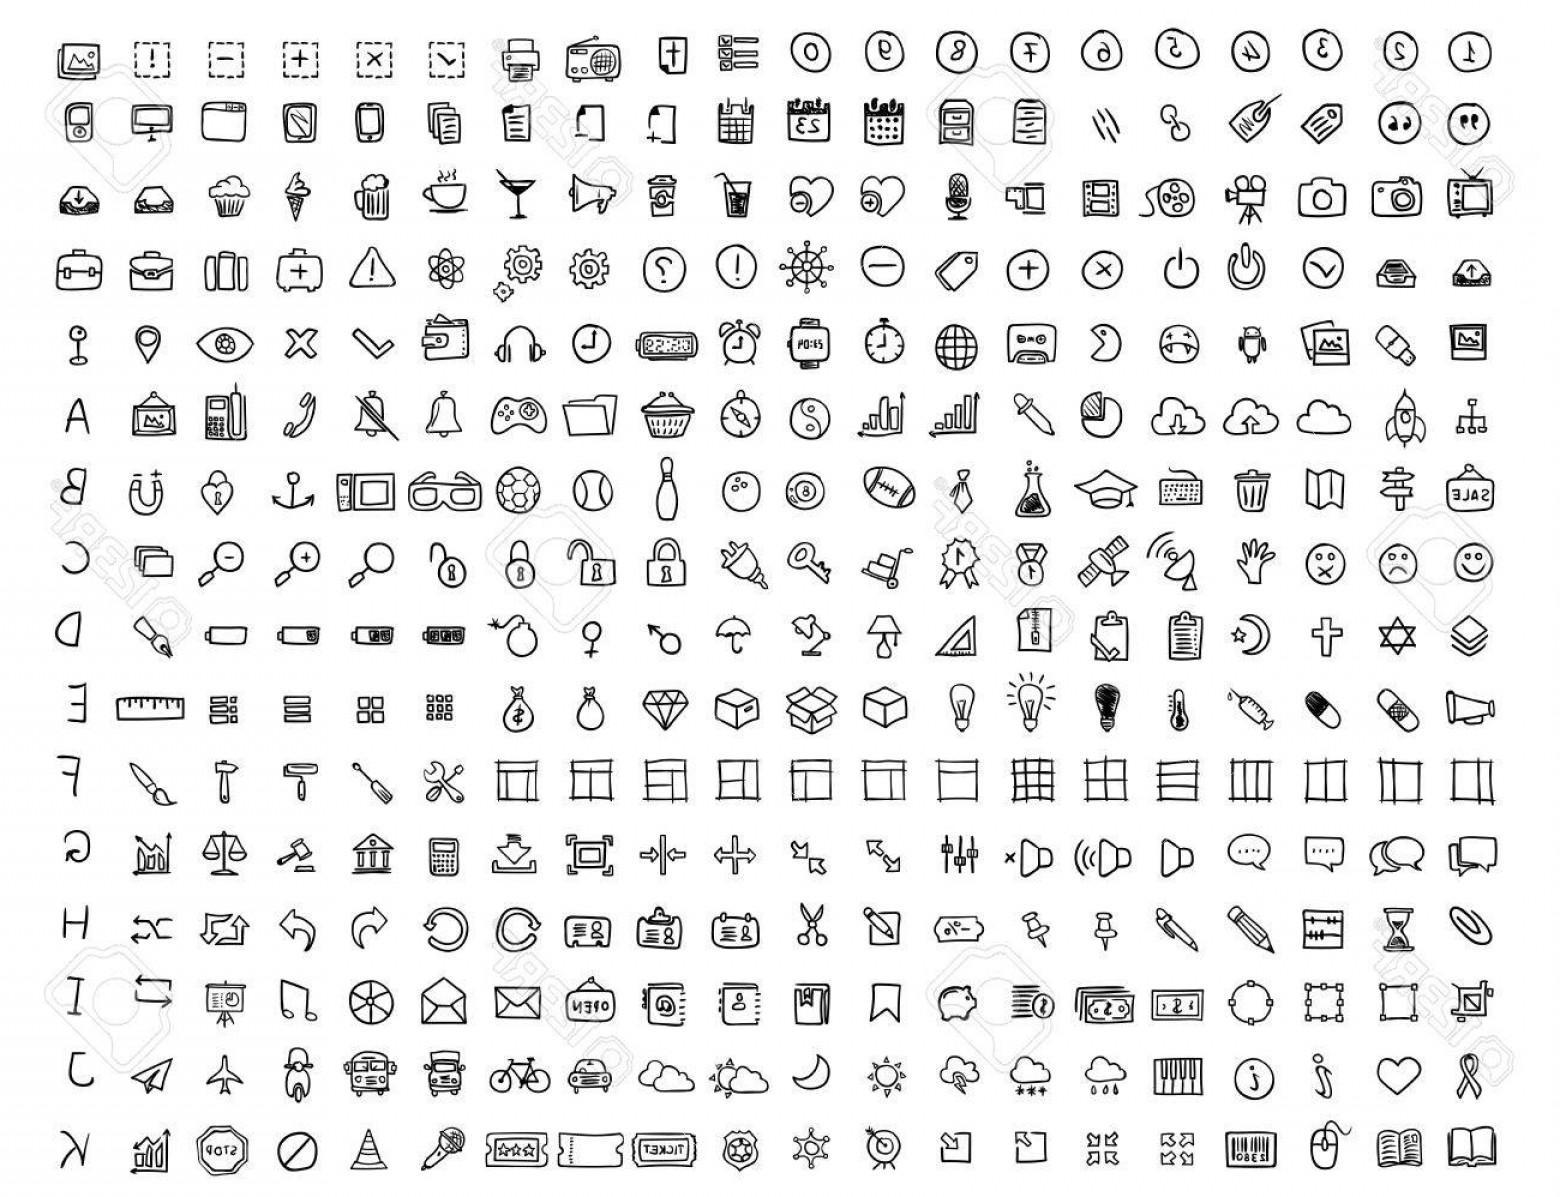 320 Vector: Photostock Vector Set Of Hand Drawn Icons Many Icons Painted Marker